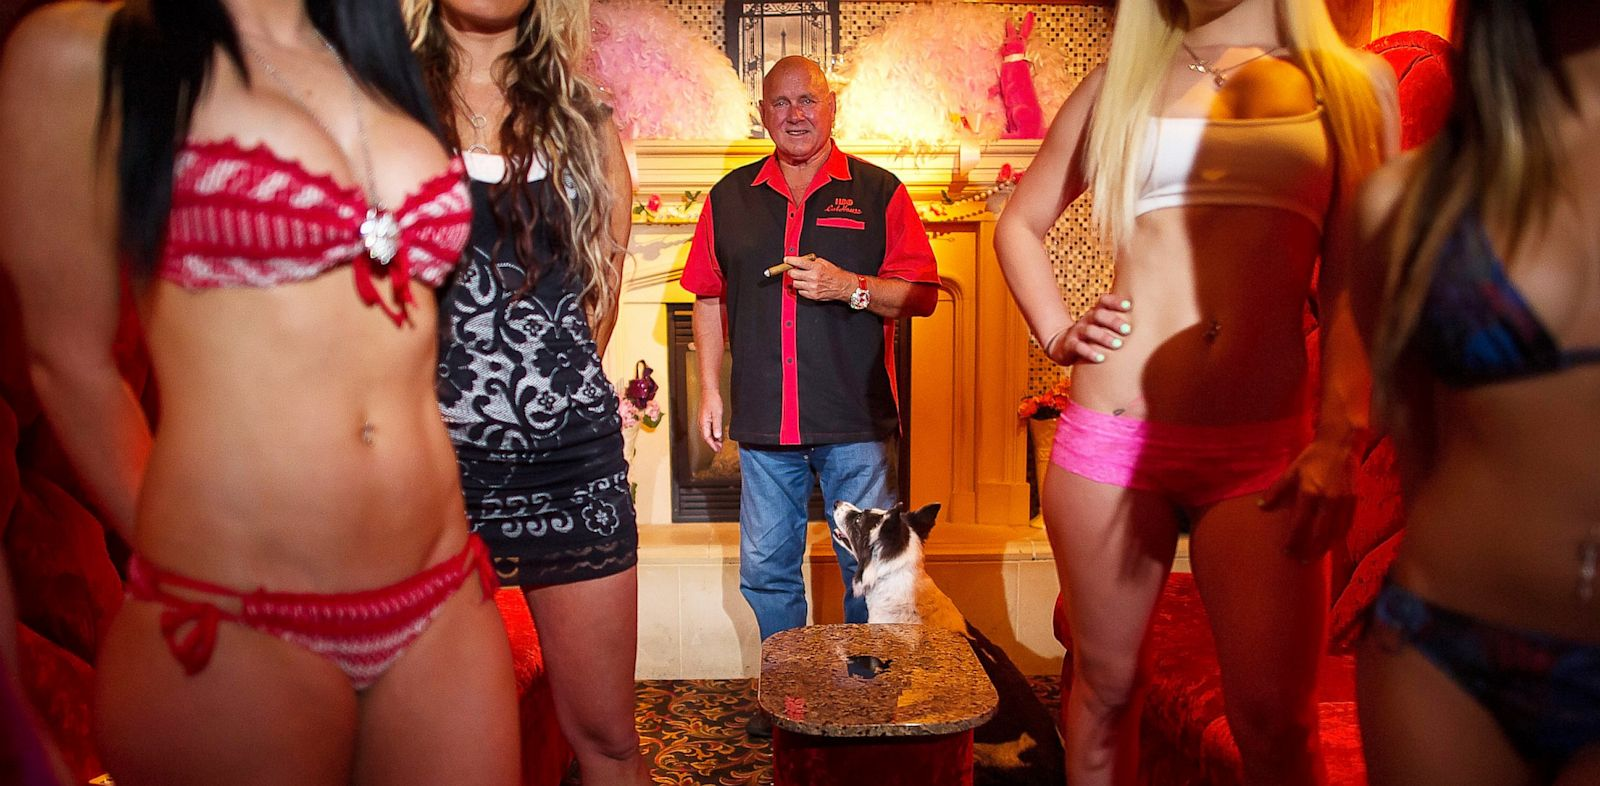 PHOTO: Dennis Hof, owner of the Moonlight Bunny Ranch, center, stands inside the Moonlight Bunny Ranch in Carson City, Nevada, Aug. 20, 2013.